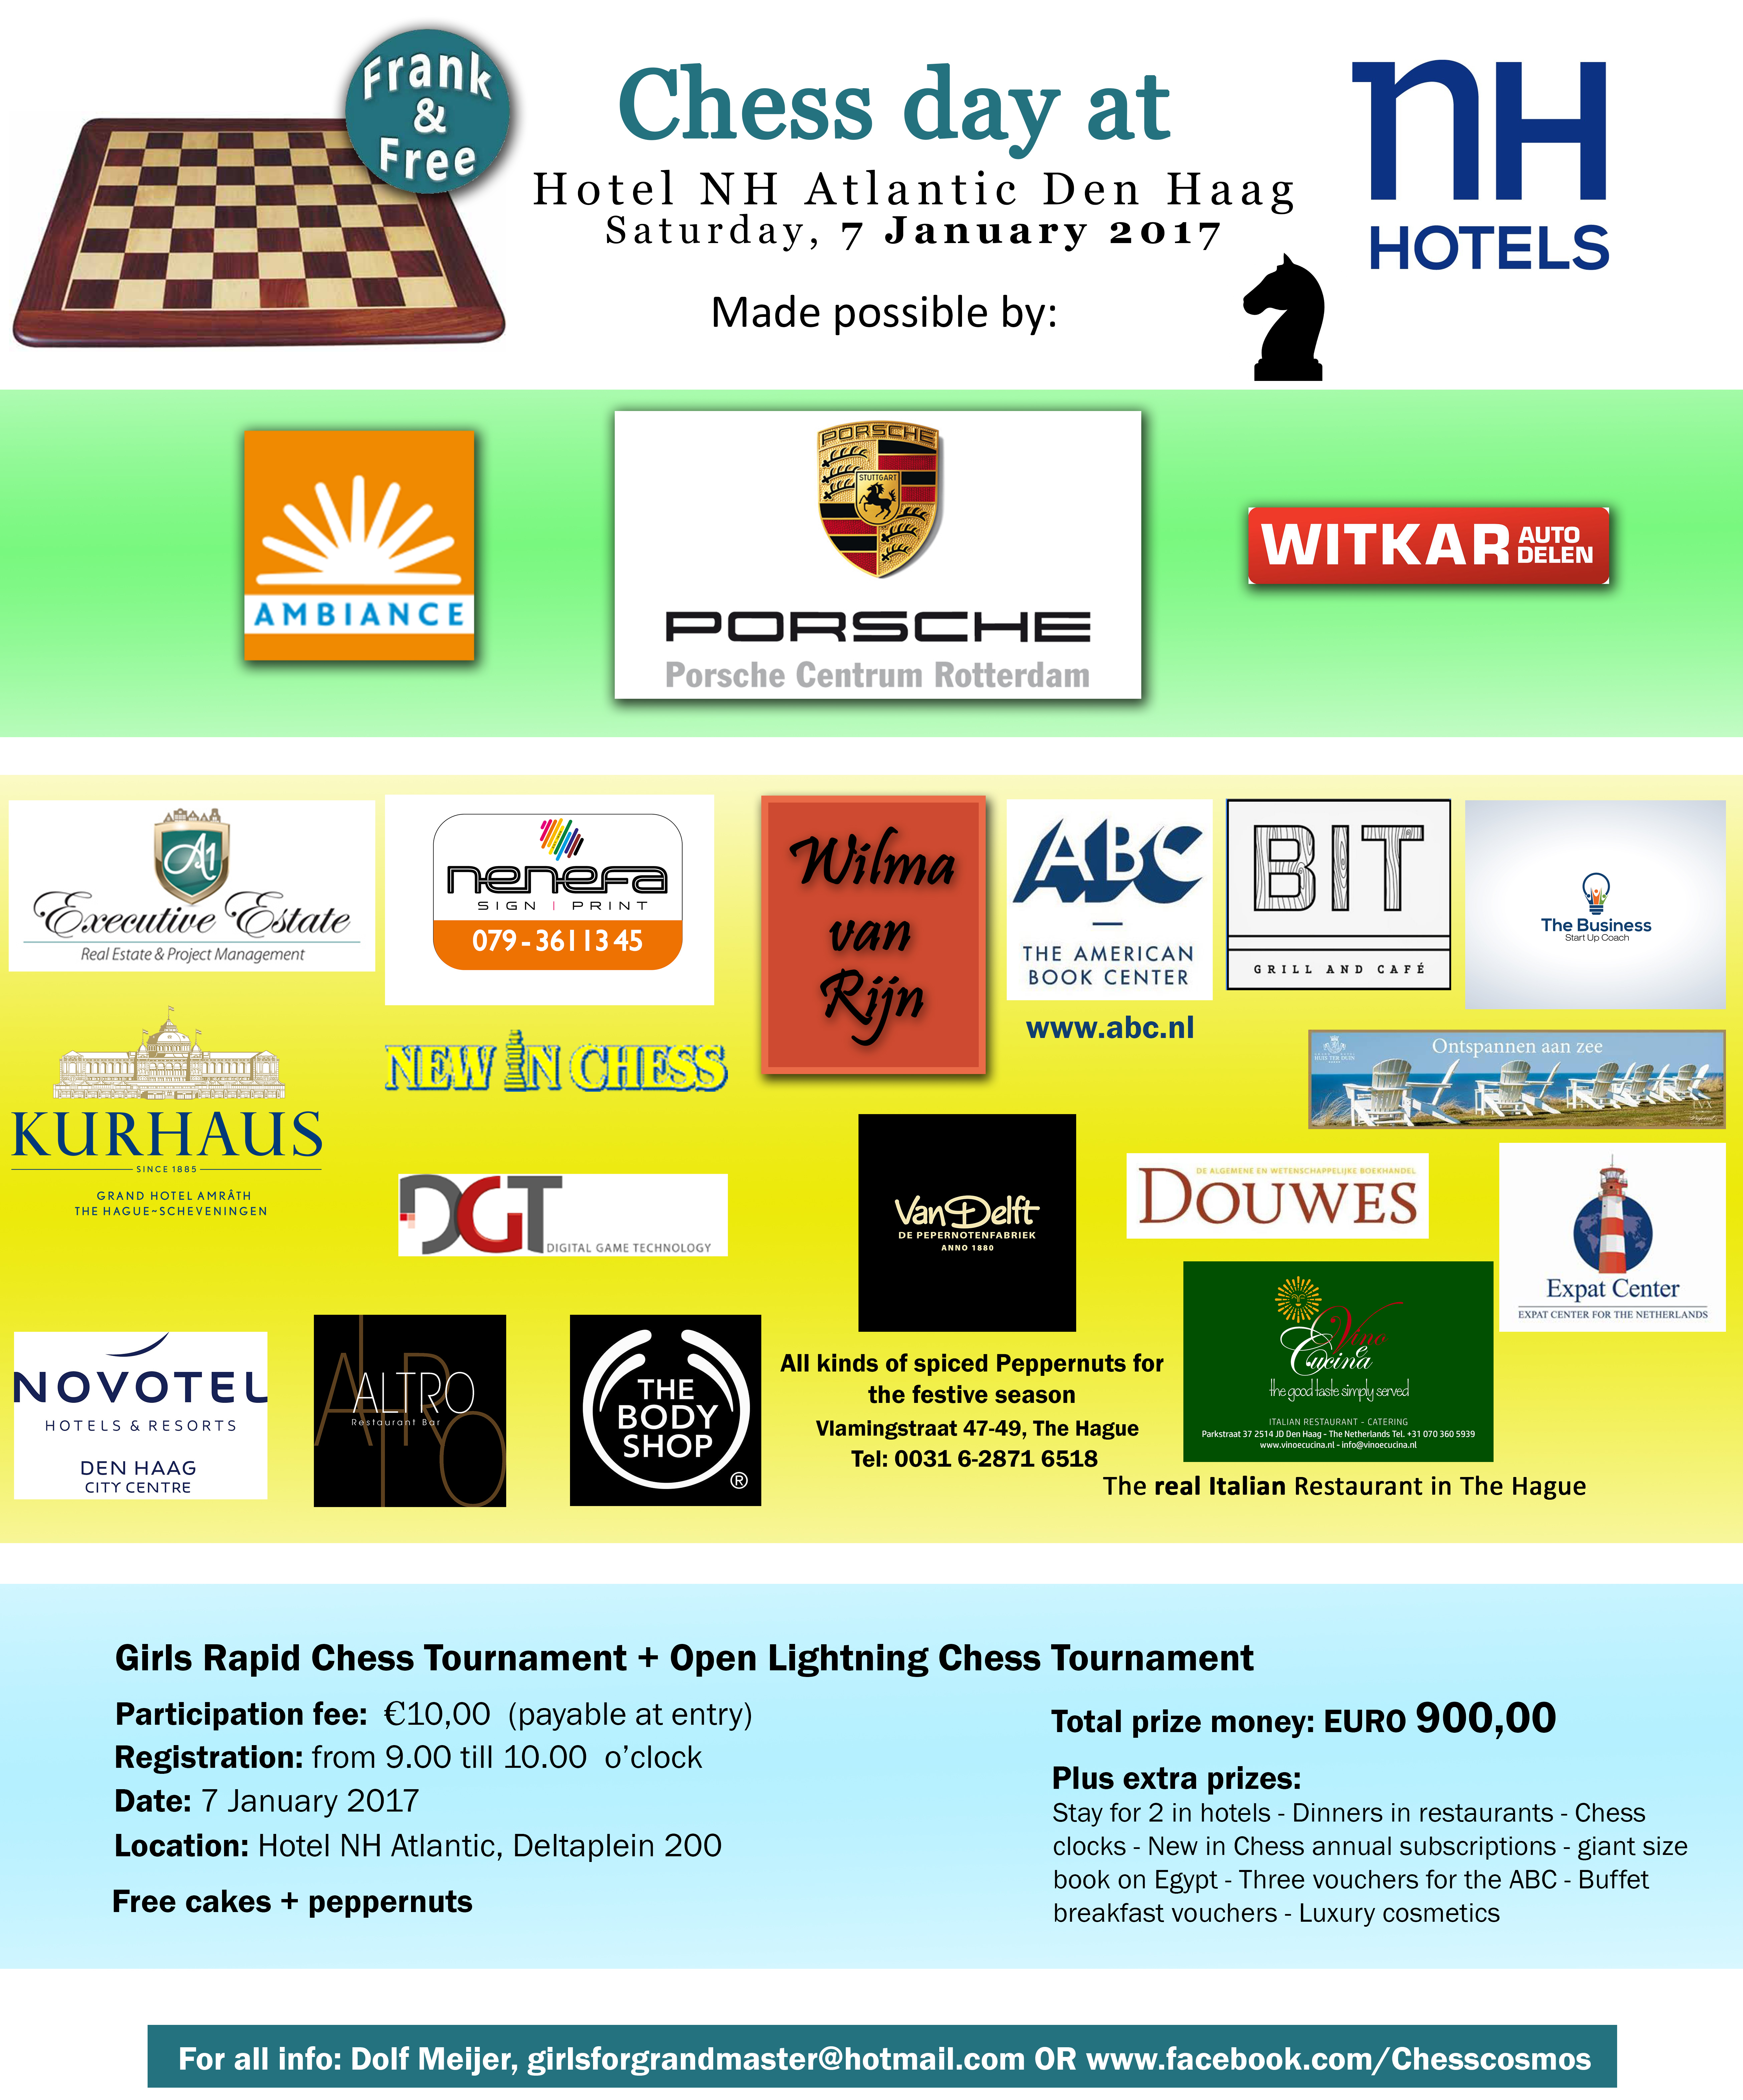 chess-day-at-hotel-nh-atlantic-den-haag-on-7-january-2017